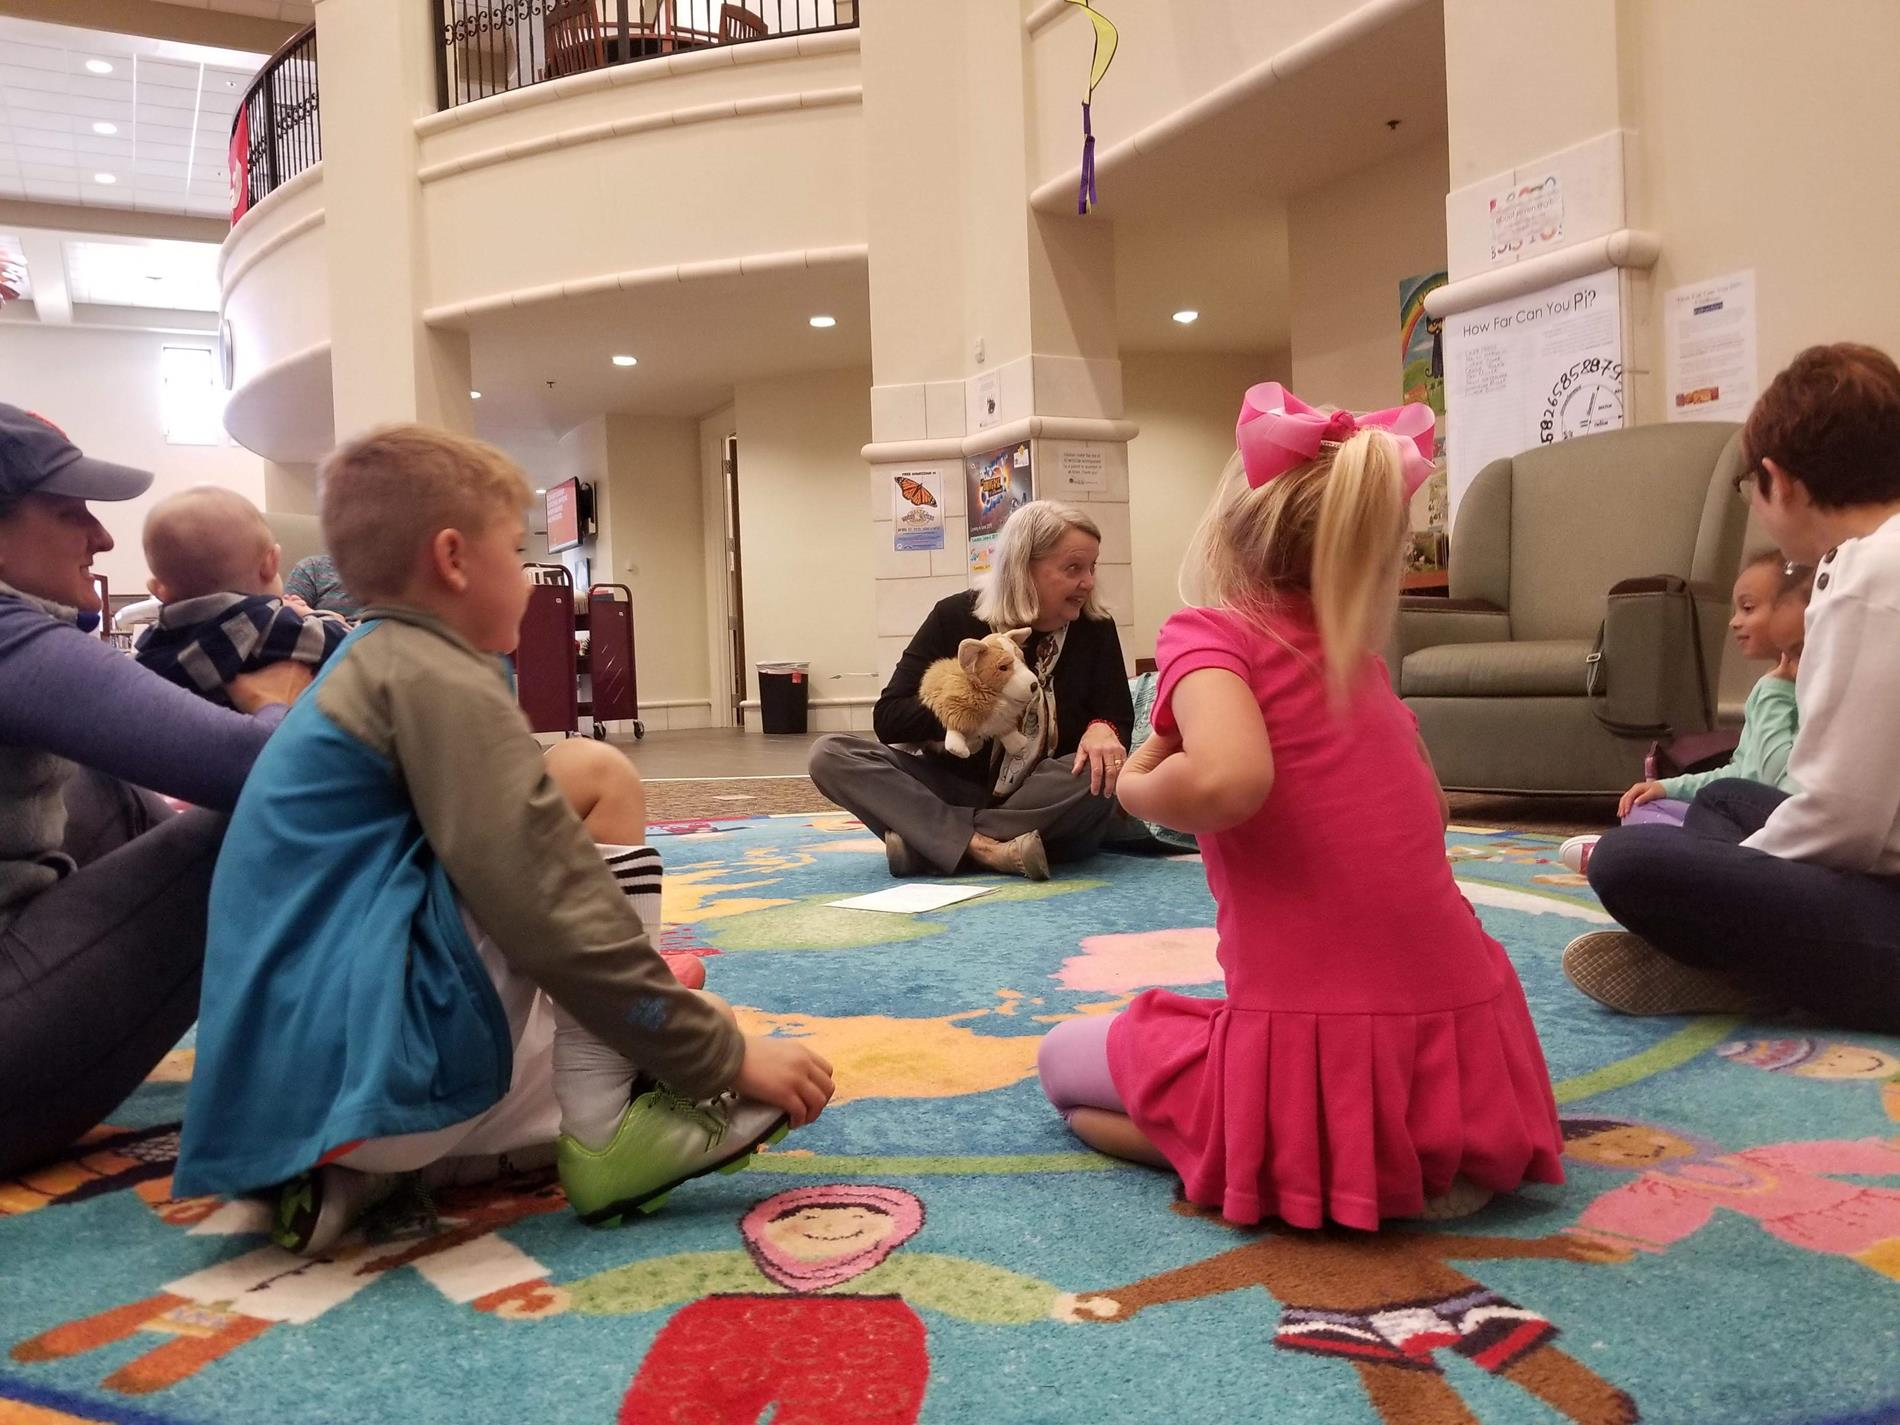 Children gathered around Mrs. Mary as she tells a story with her Corgi dog puppet, Cupcake